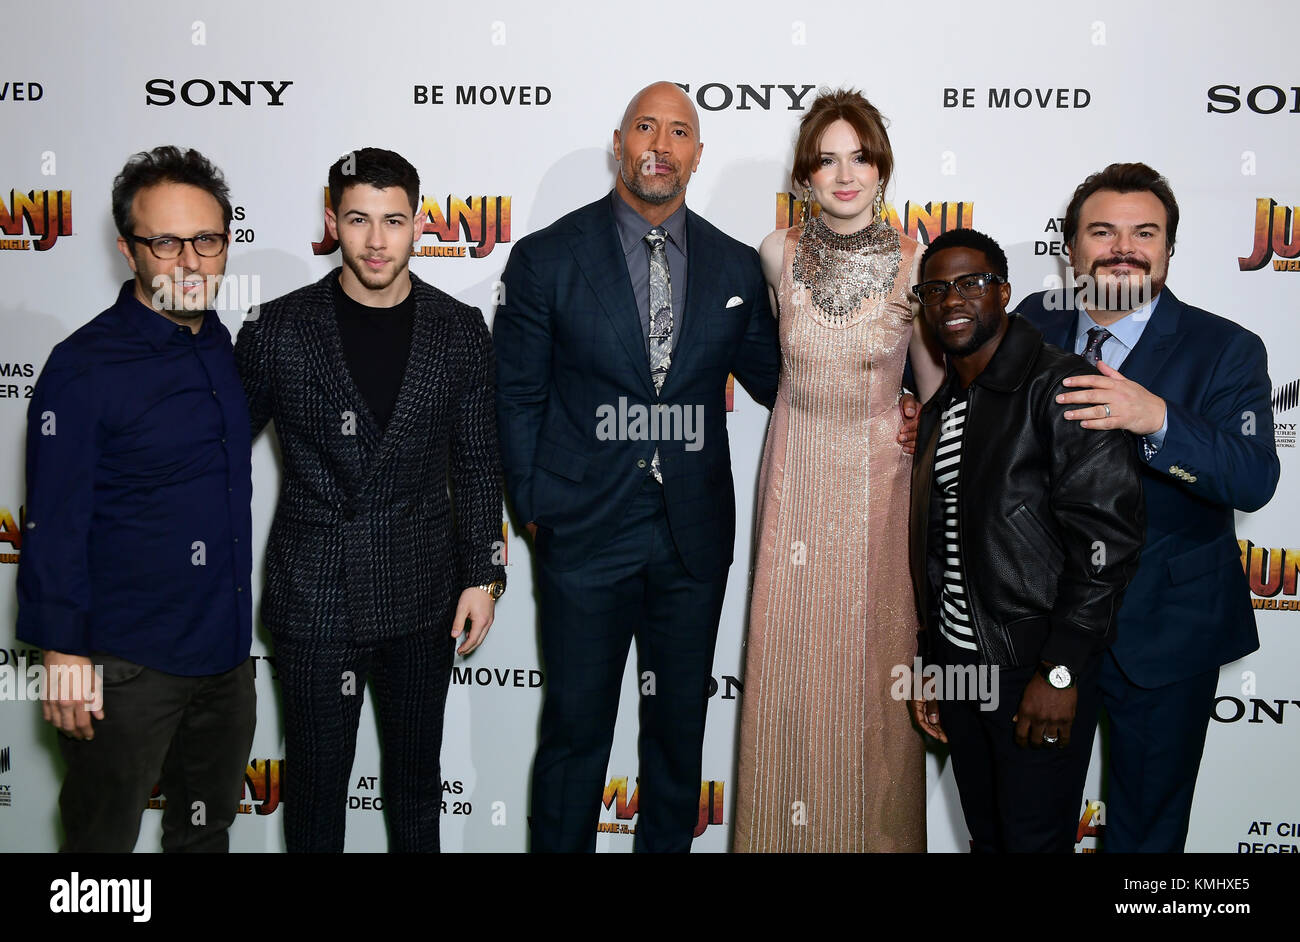 (Left to right) Jake Kasdan, Nick Jonas, Dwayne Johnson, Karen Gillan, Kevin Hart and Jack Black attending the Jumanji: Welcome to the Jungle Premiere held at The Vue West End in Leicester Square, London. Stock Photo